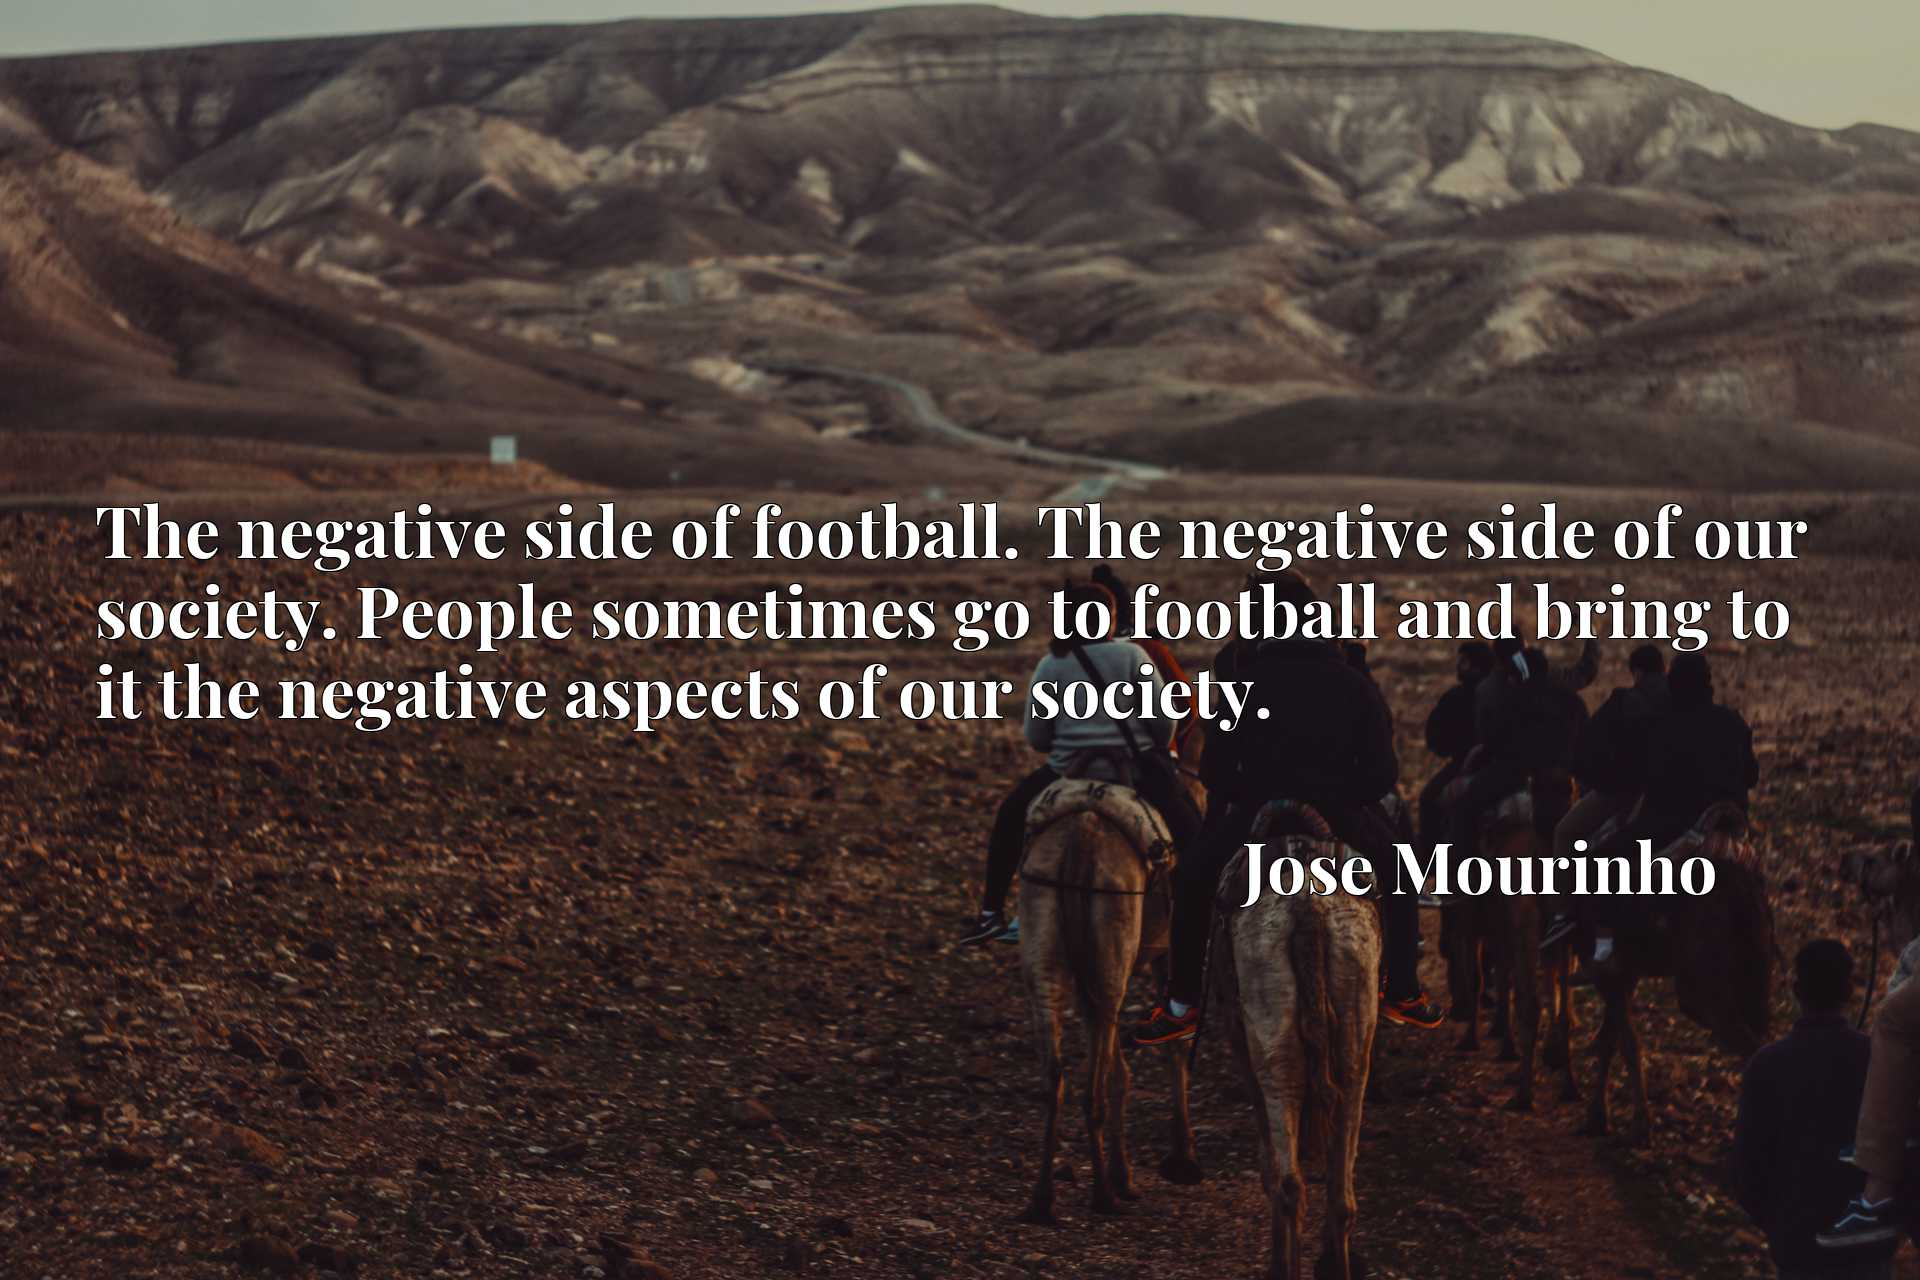 The negative side of football. The negative side of our society. People sometimes go to football and bring to it the negative aspects of our society.